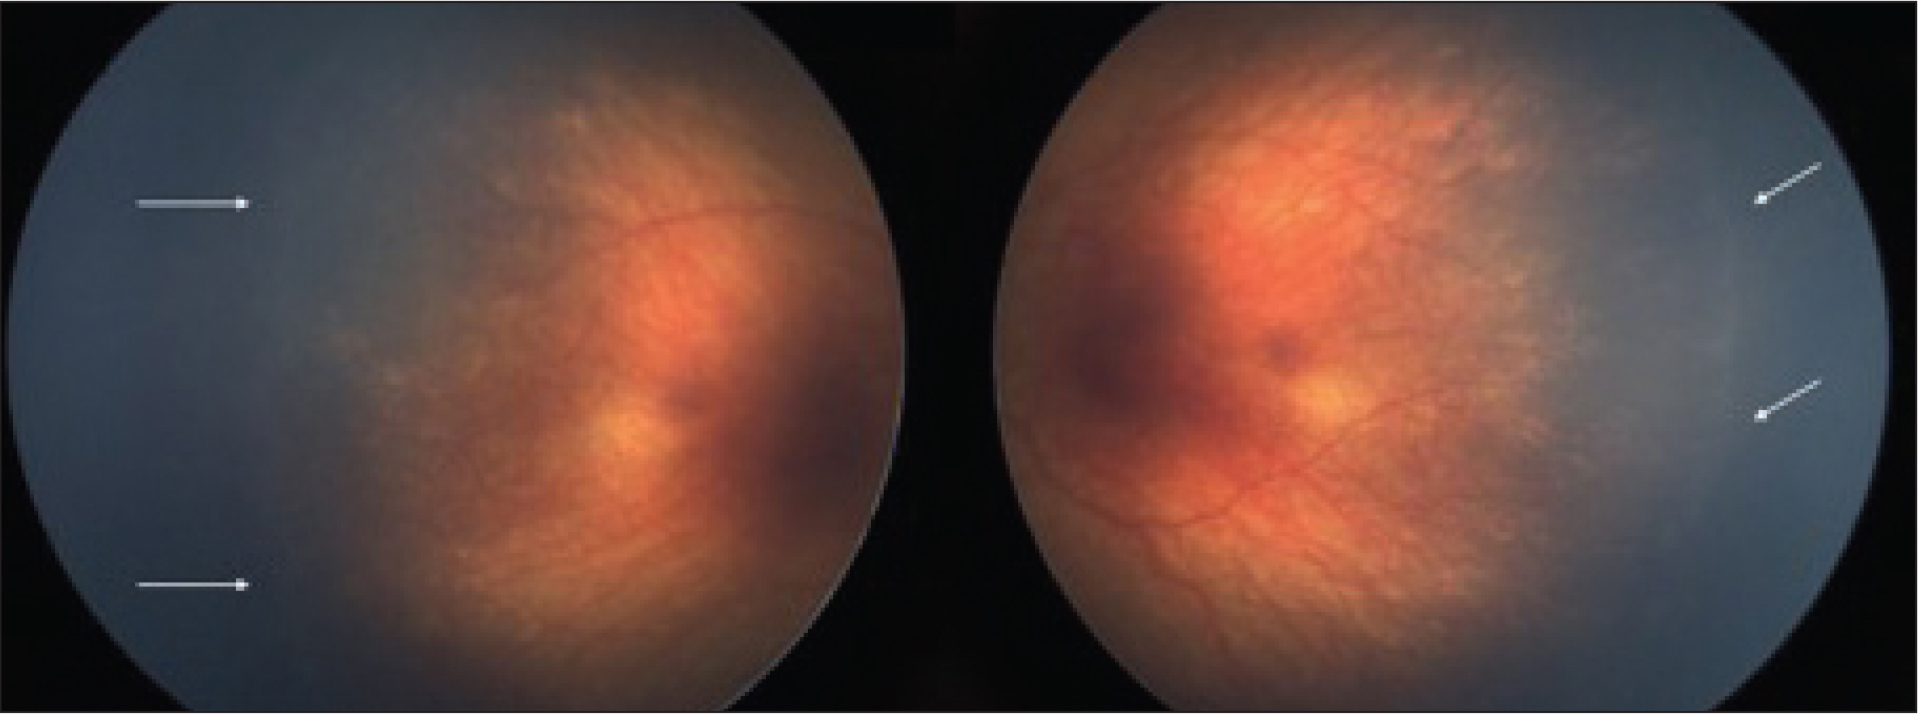 Postconceptual age of 48 weeks: stage 2 retinopathy of prematurity with 12 clock hours of involvement in zones II and III in both eyes.